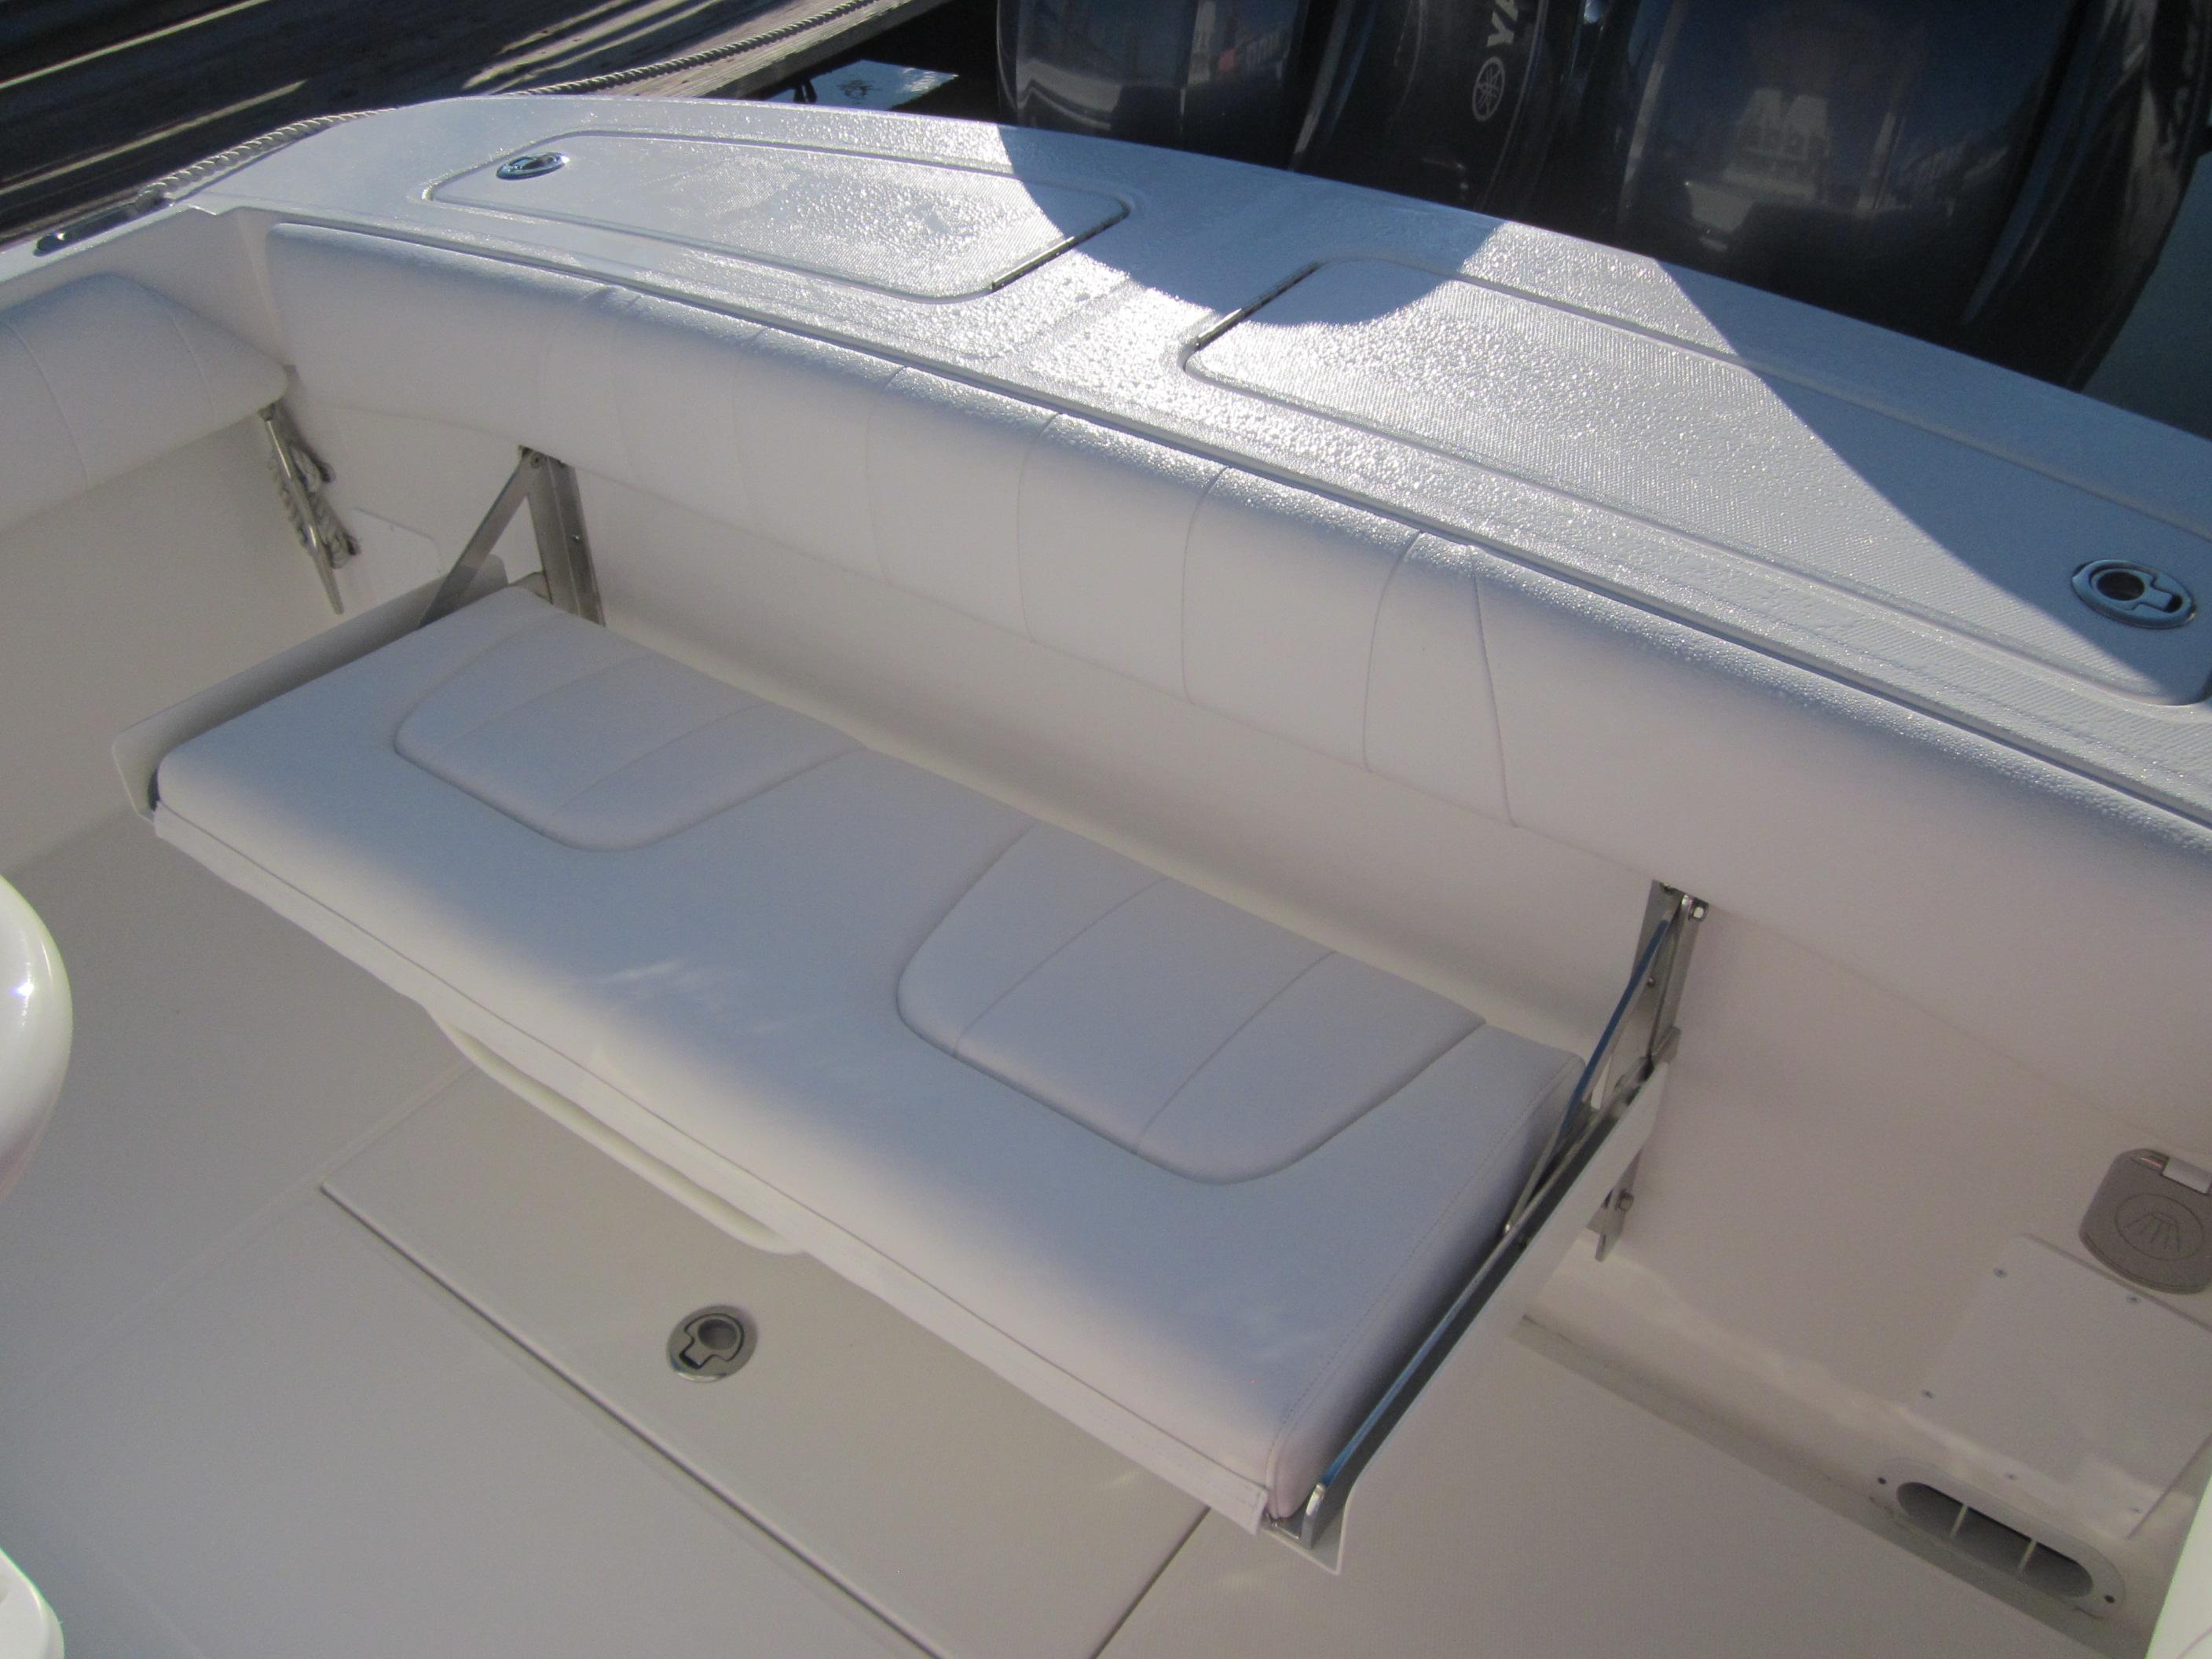 Regulator 25FS Center Console